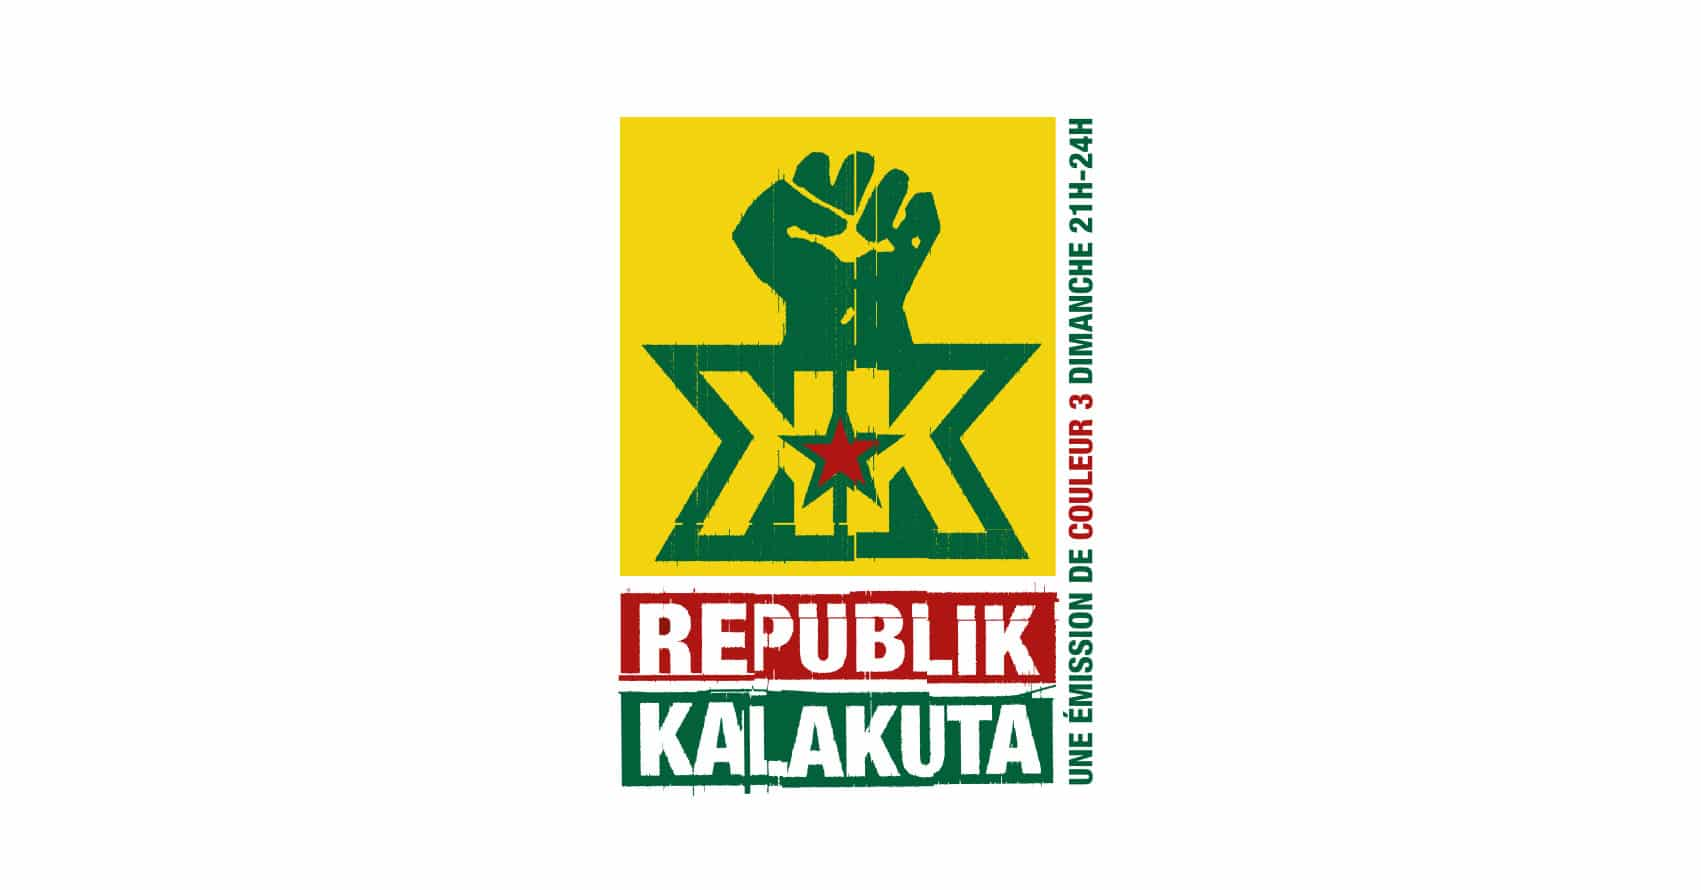 Couleur 3 - Republik Kalakuta - Emission musicale - Logo - Haymoz design